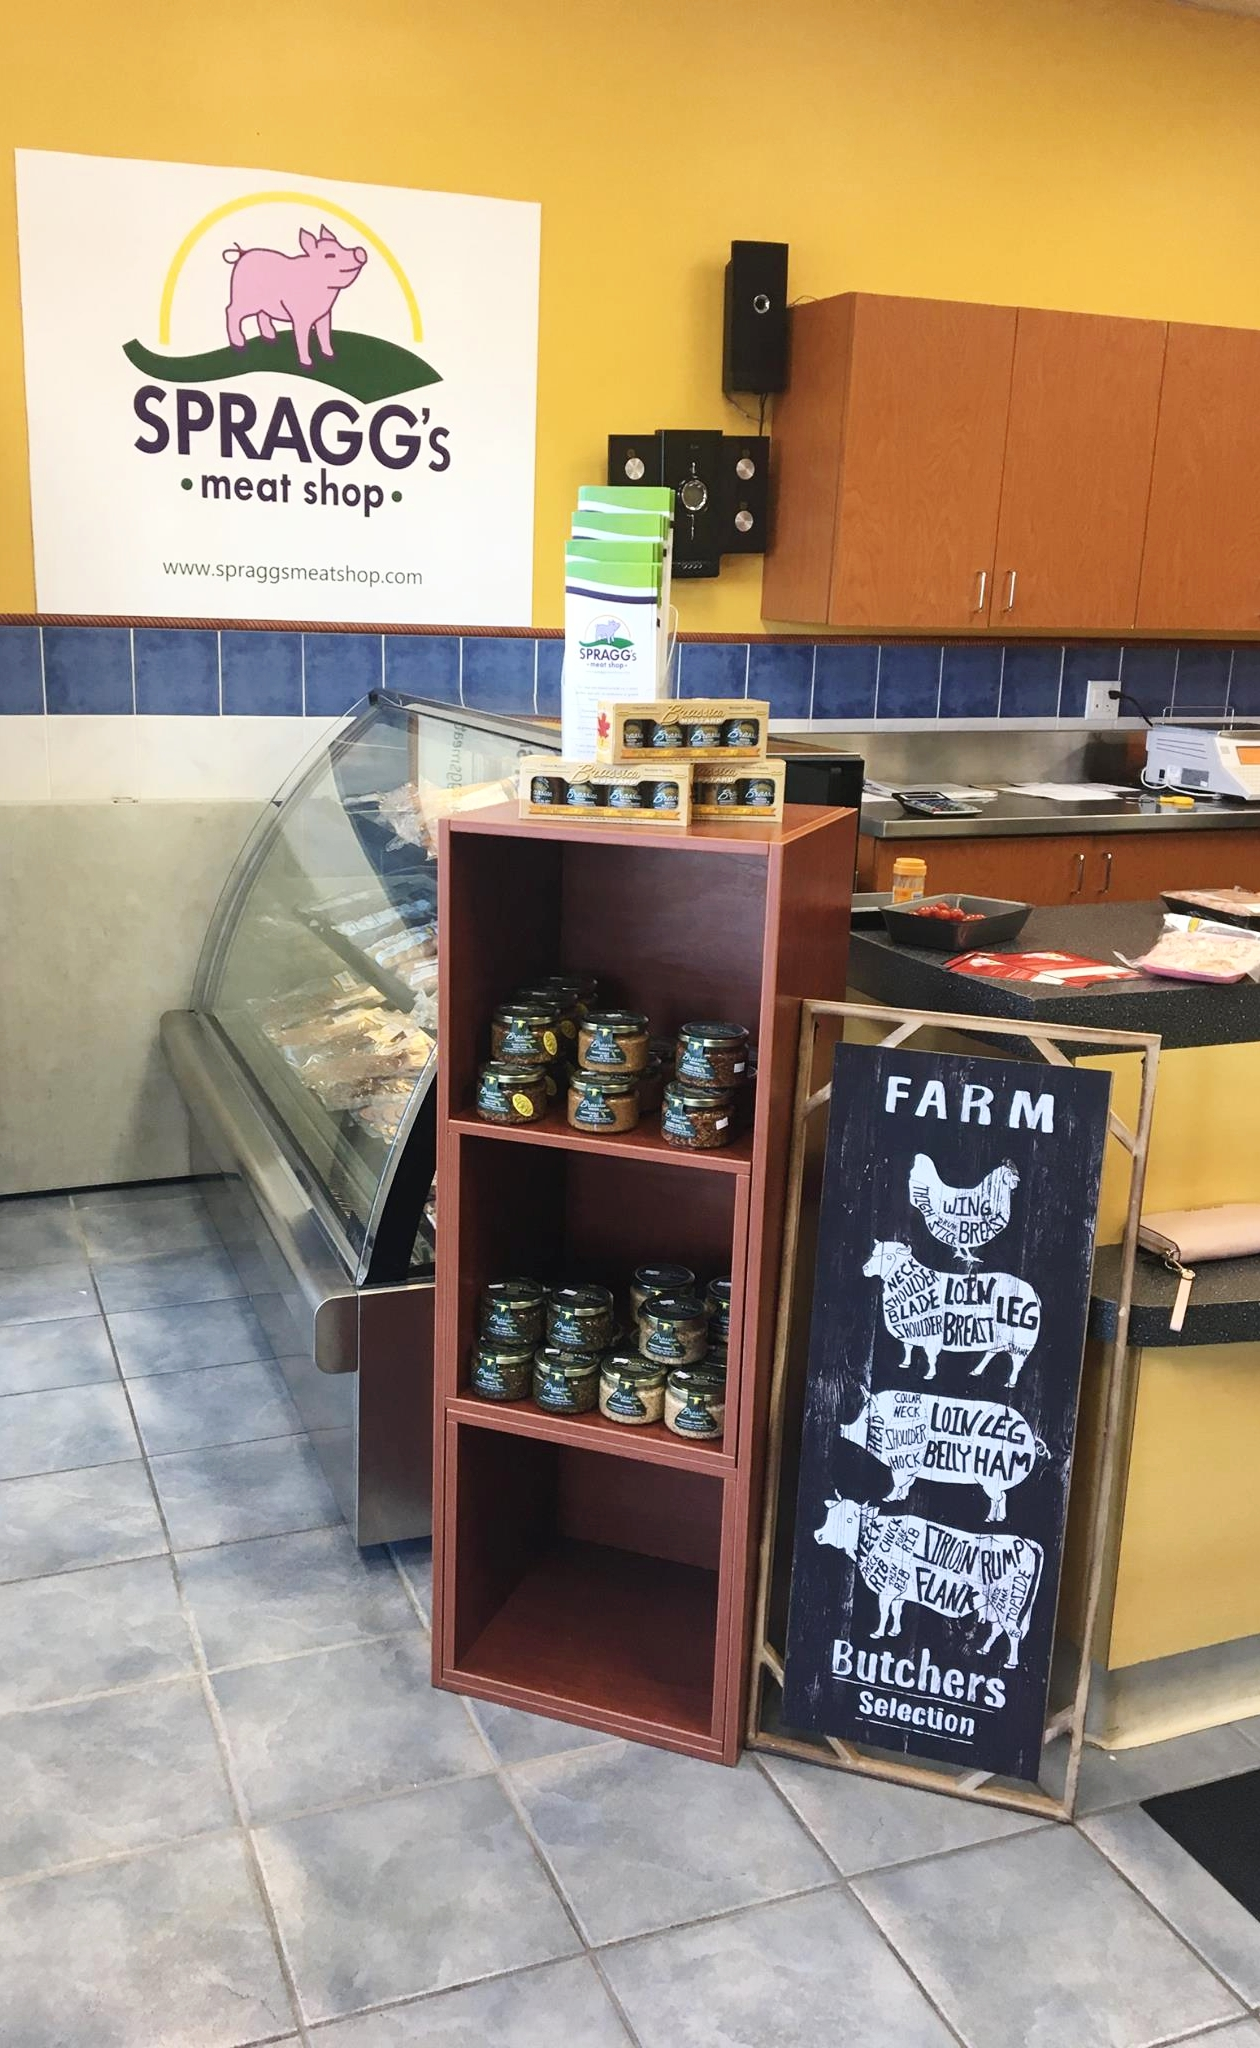 Spraggs Meat Shop Calgary Store.jpg